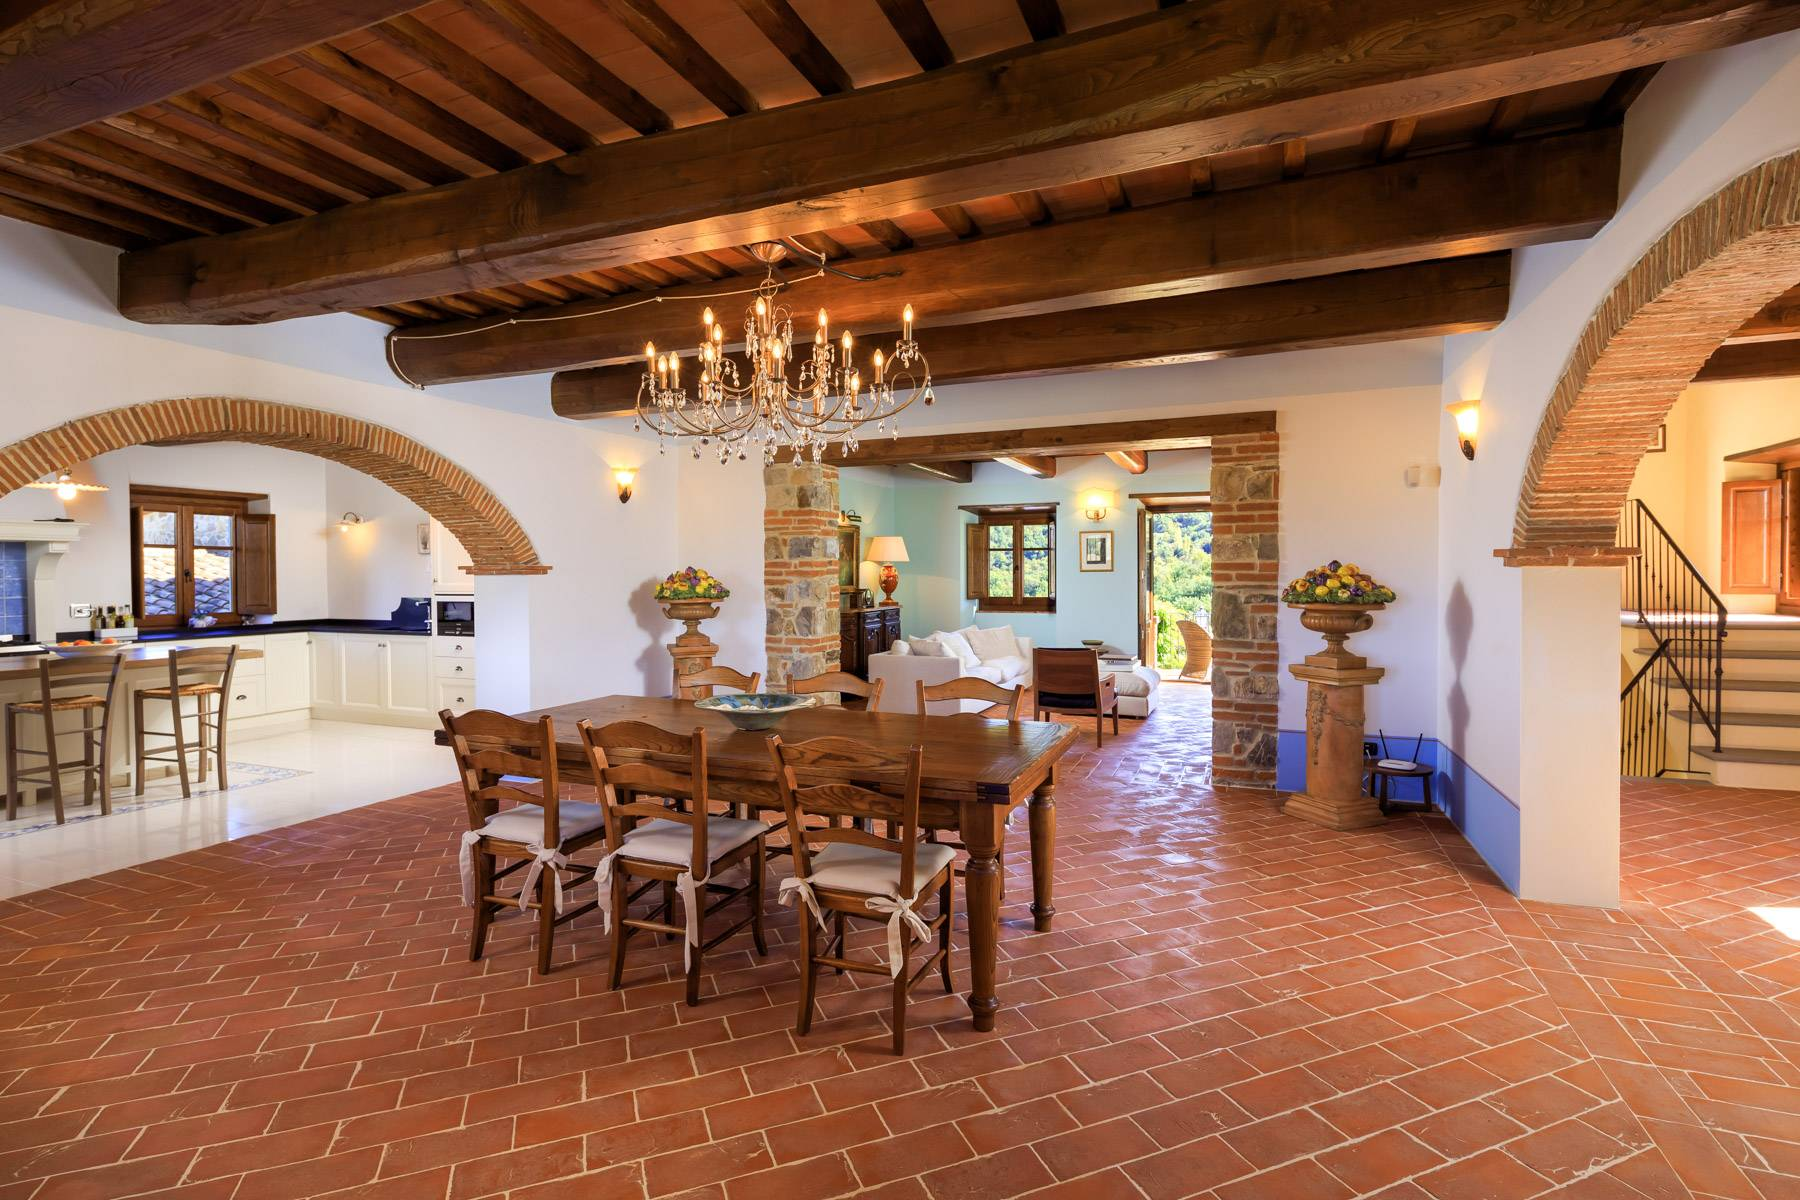 Marvelous estate with views over the Casentino valley - 22